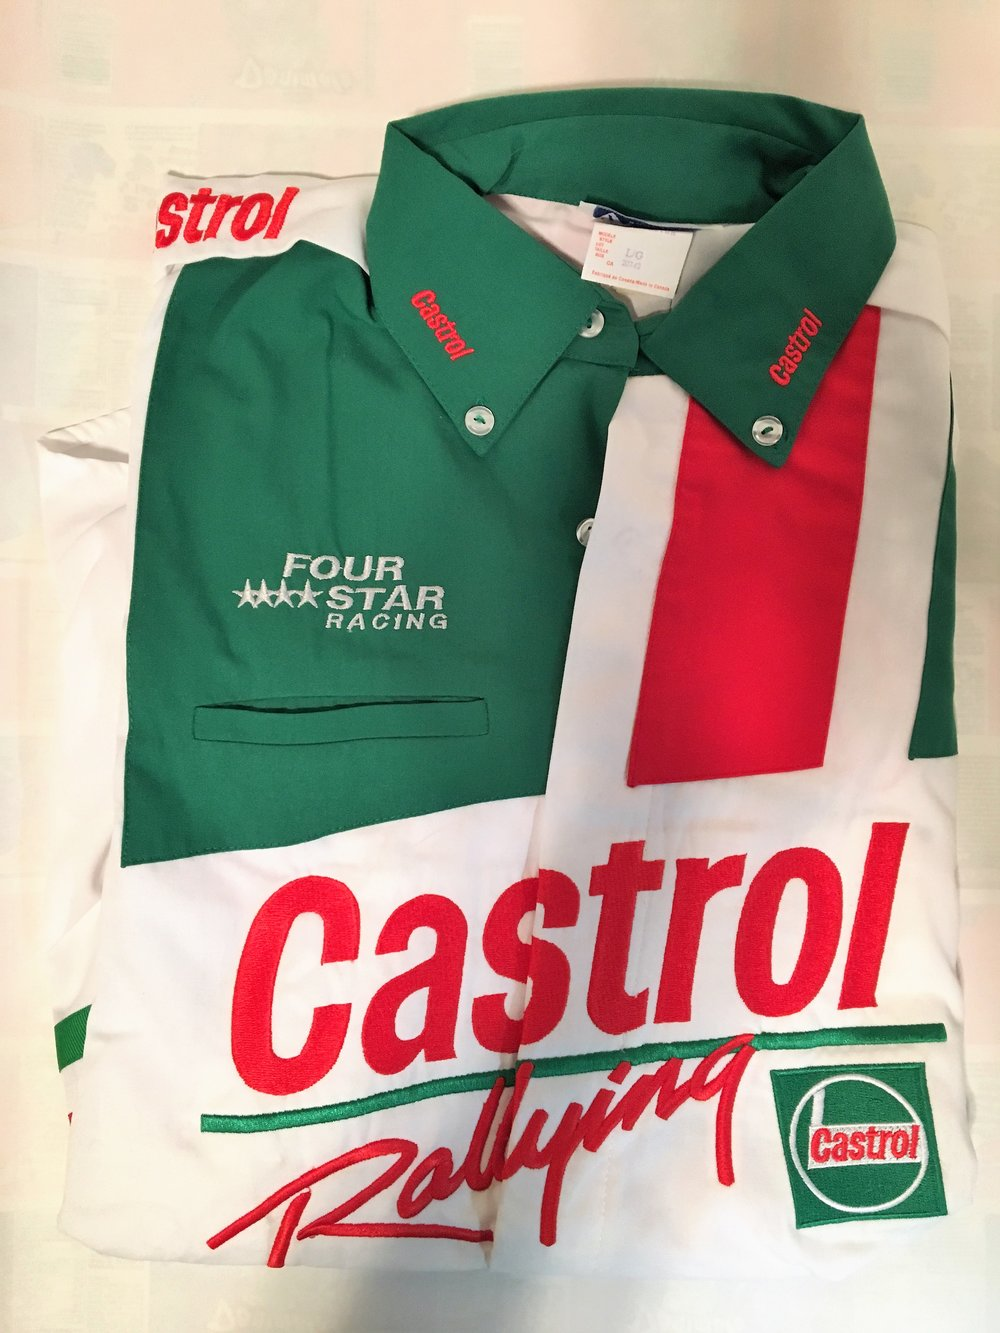 *RARE*Castrol Rallying Crew Shirt $50